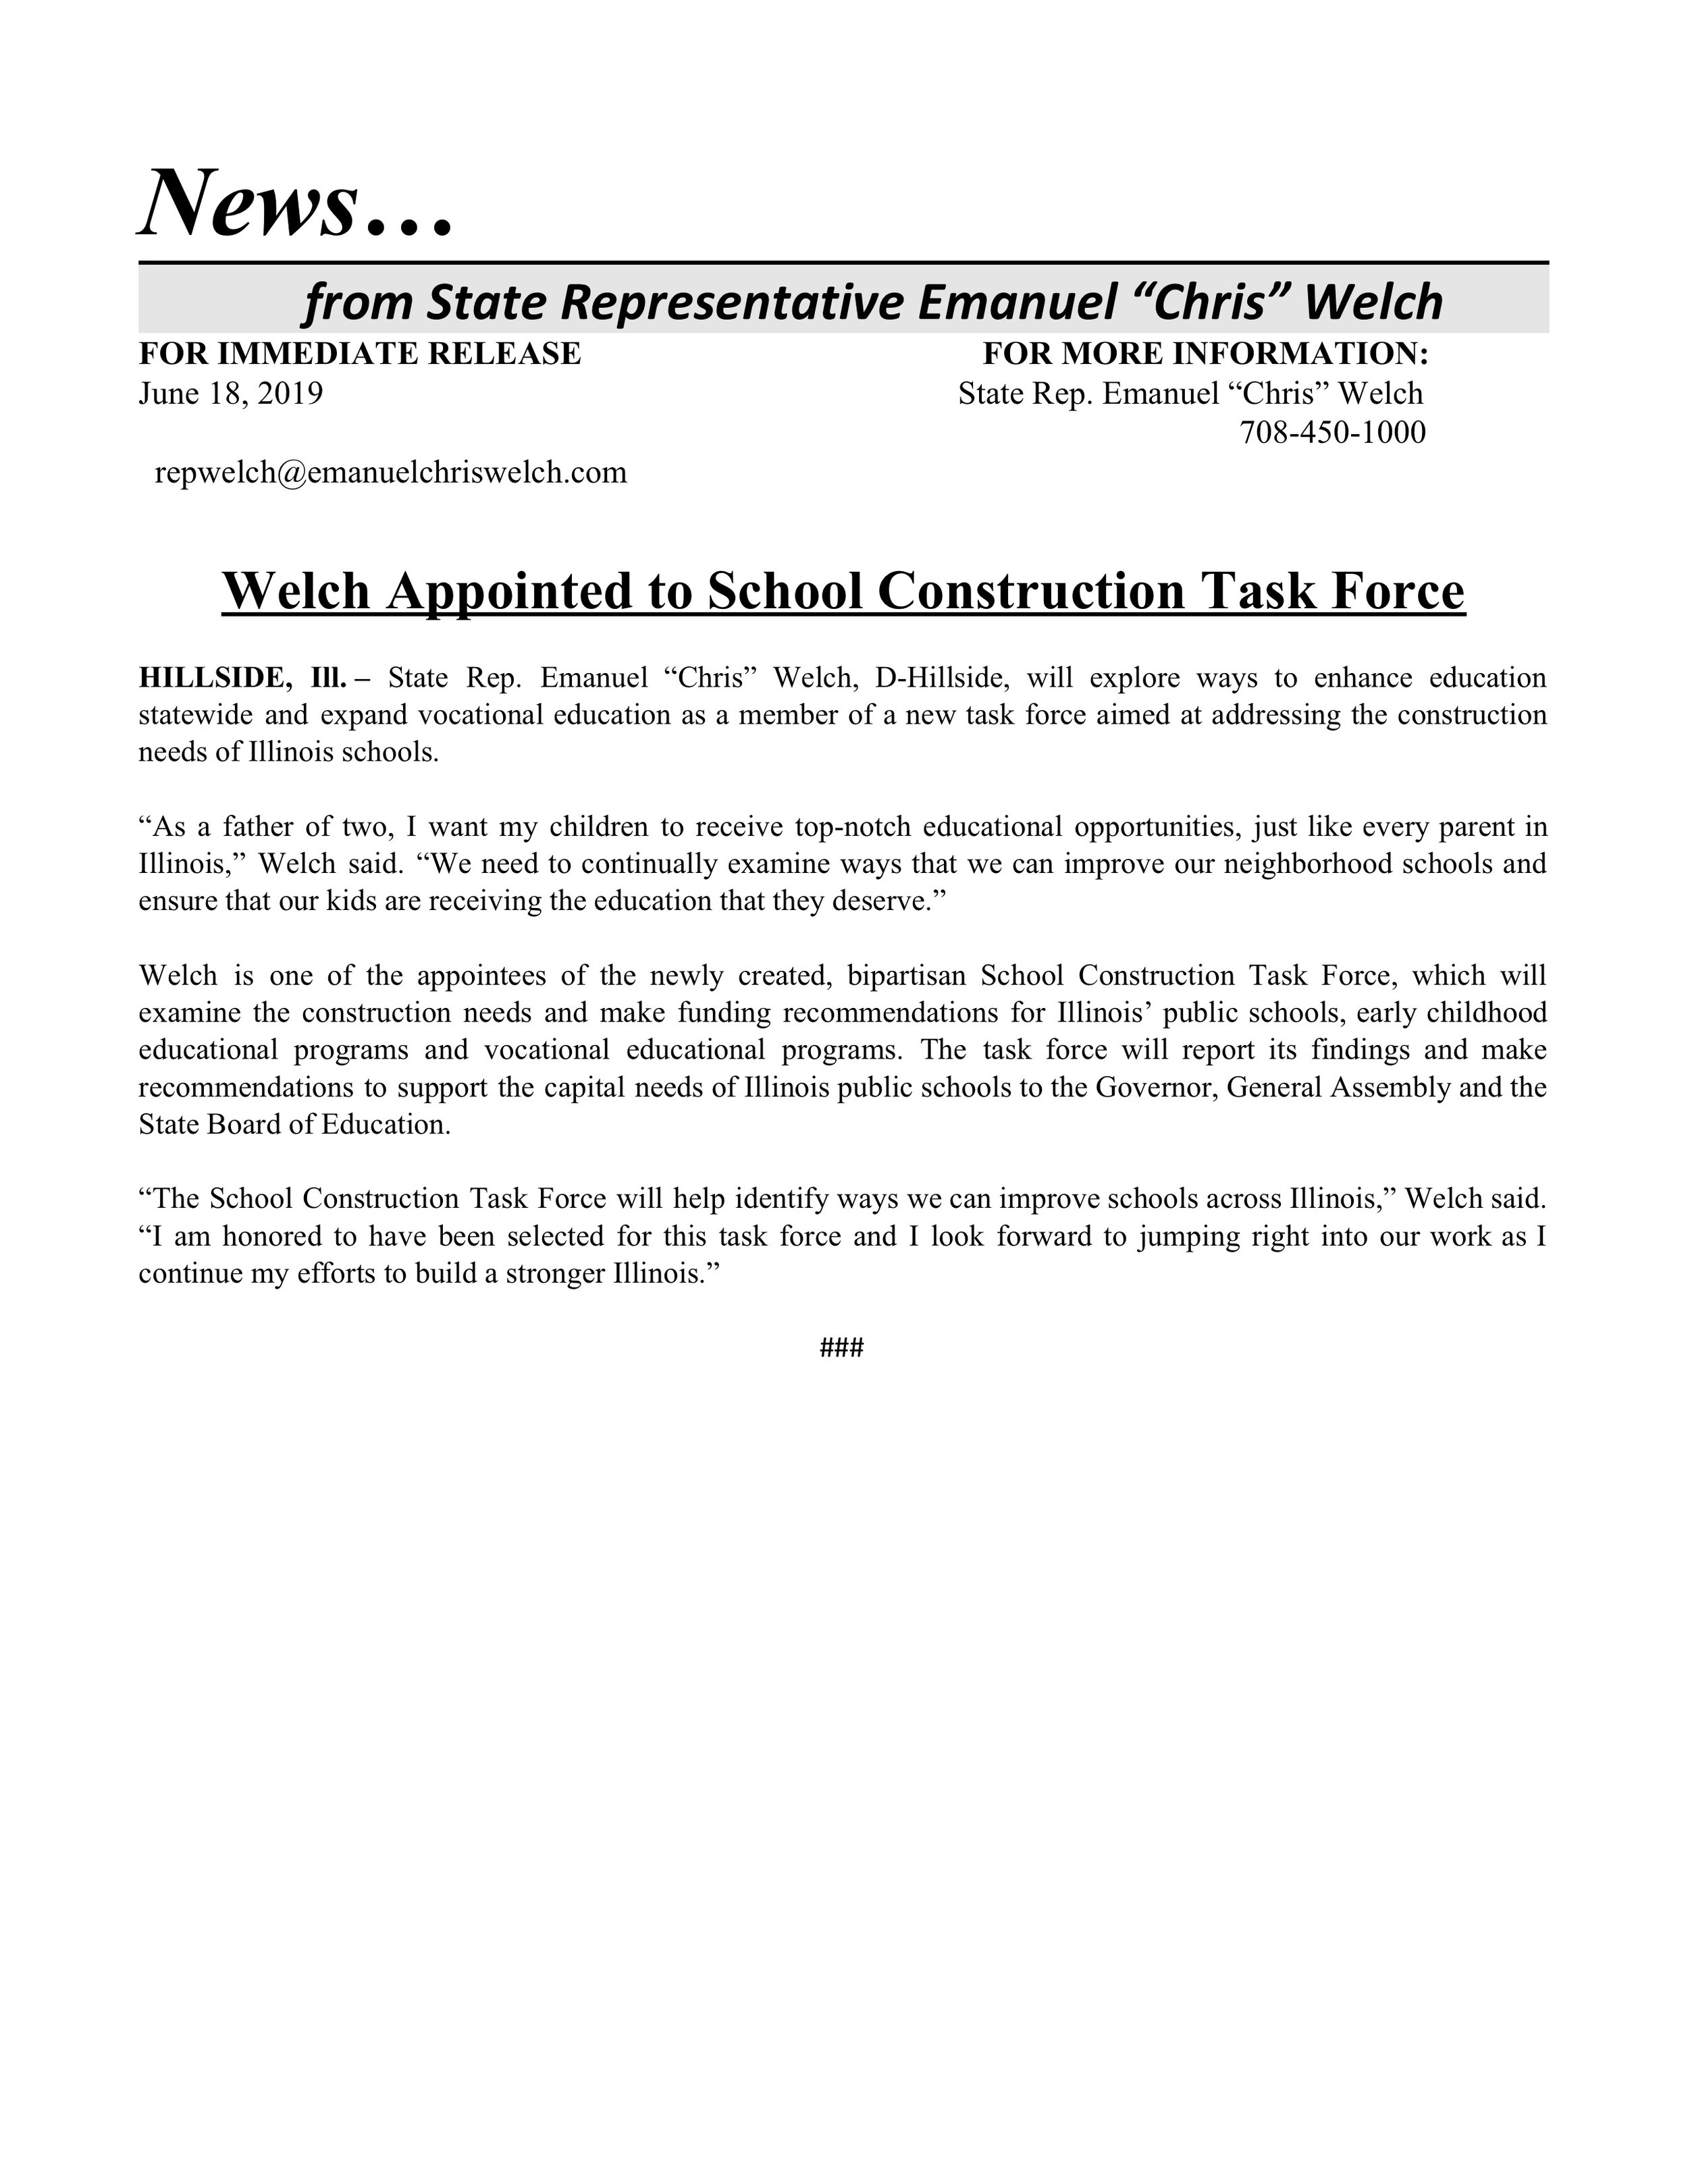 Welch Appointed to School Construction Task Force  (June 18, 2019)